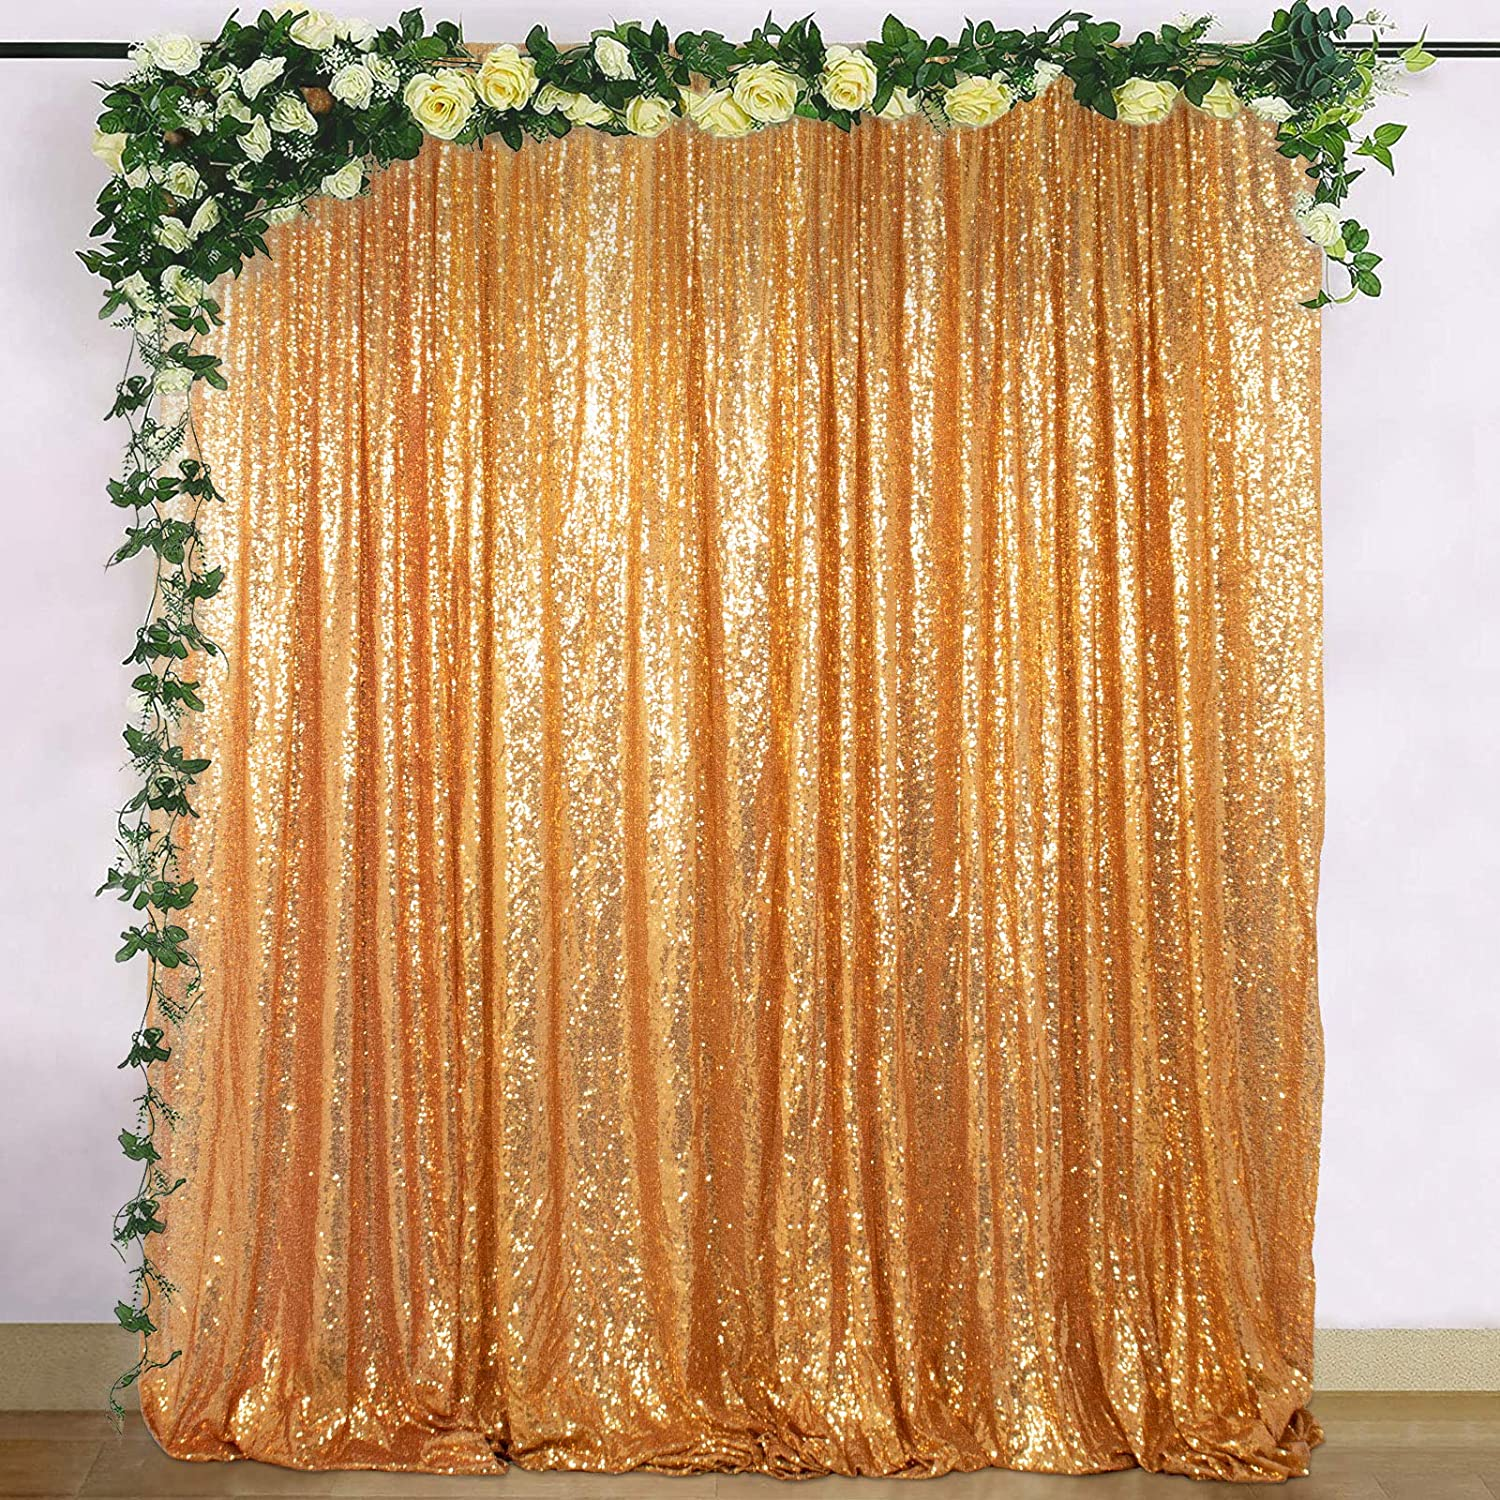 Gold Sequin 100% quality warranty Photo Backdrop Photography Wedding Large-scale sale Backg Booth